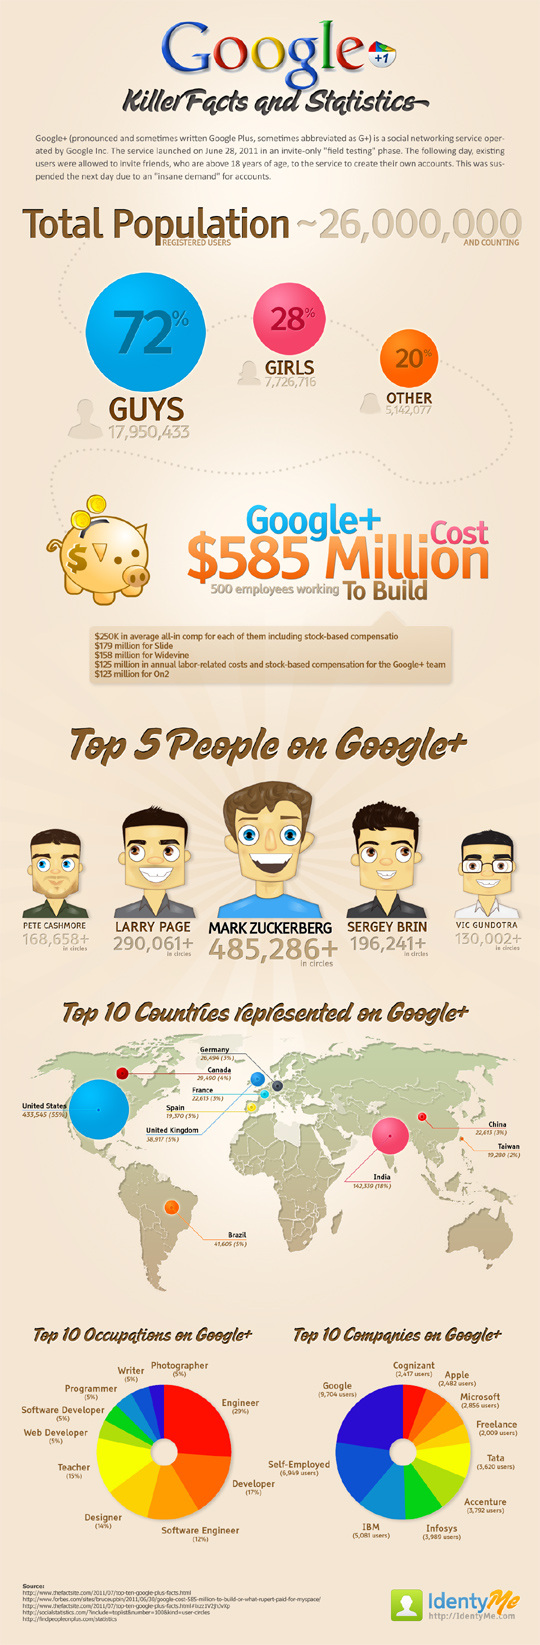 Infographic: Google+ Killer Facts and Statistics